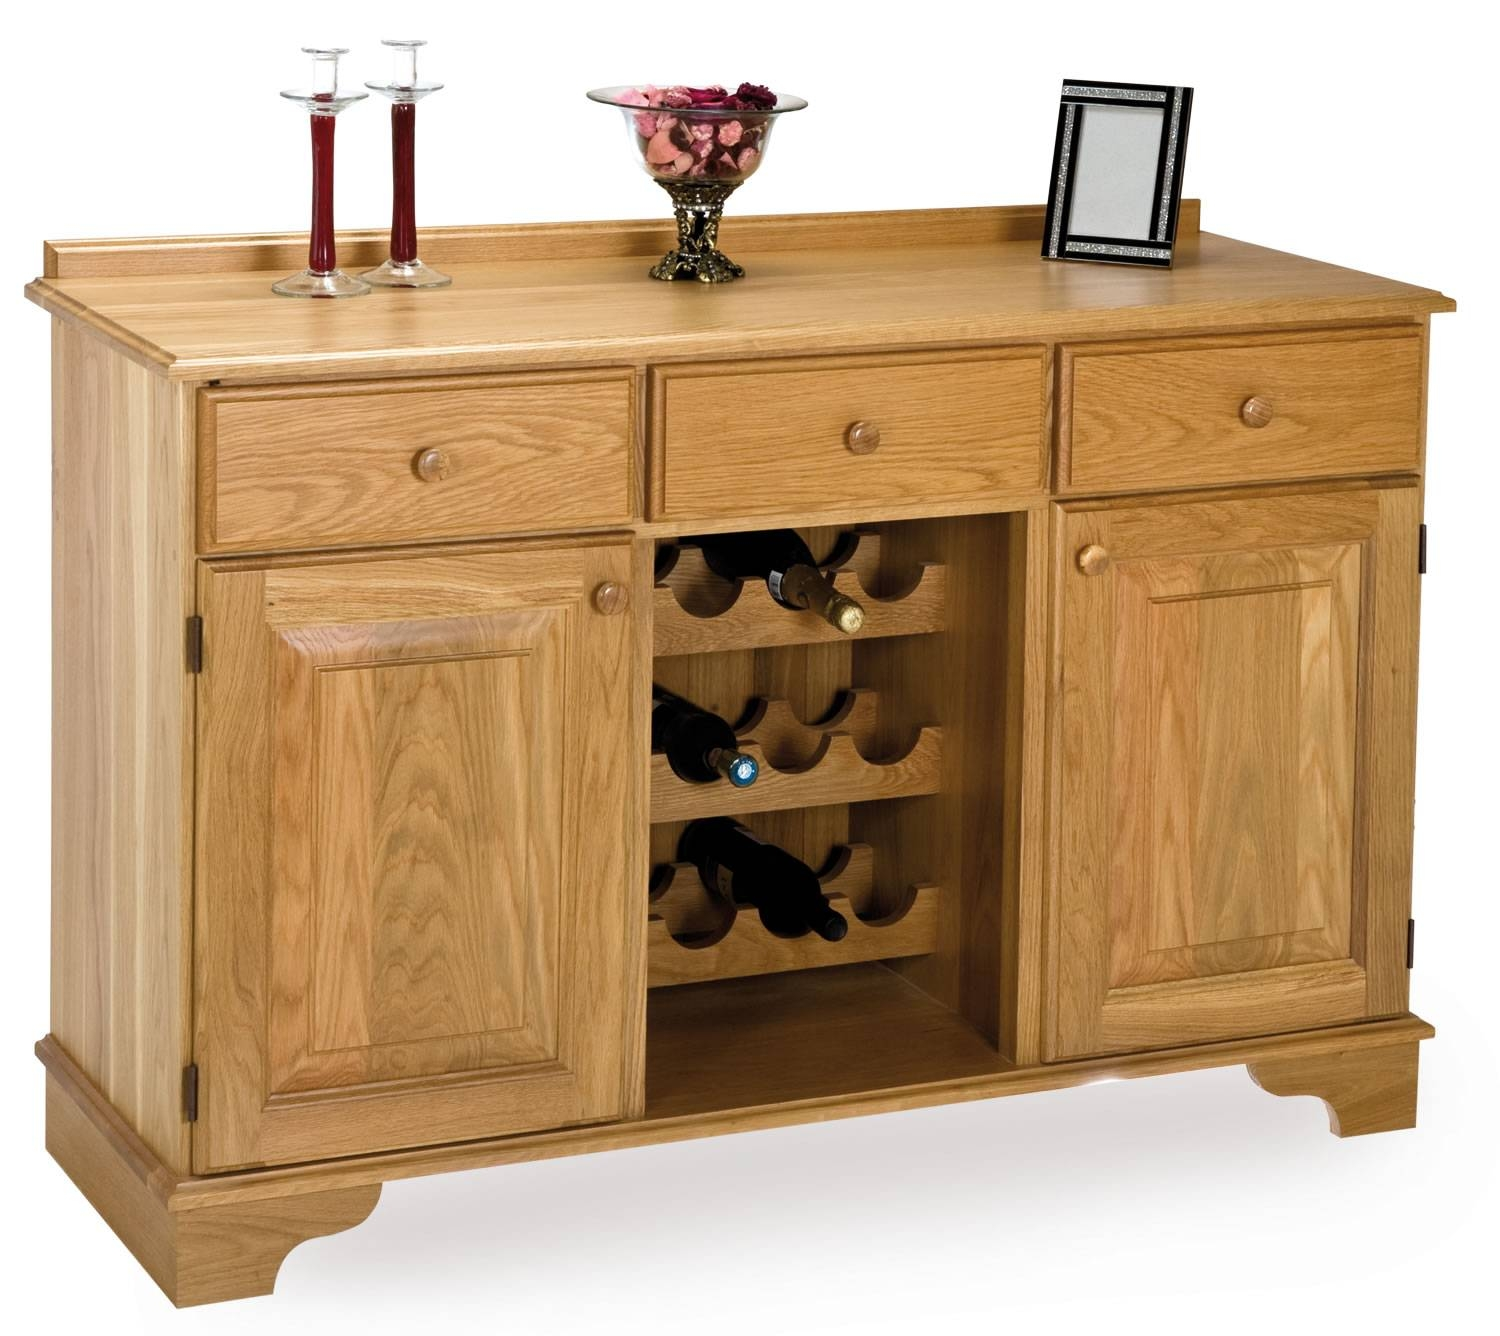 Oak Sideboards With Wine Rack | Mpfmpf Almirah, Beds inside Sideboards With Wine Racks (Image 12 of 30)